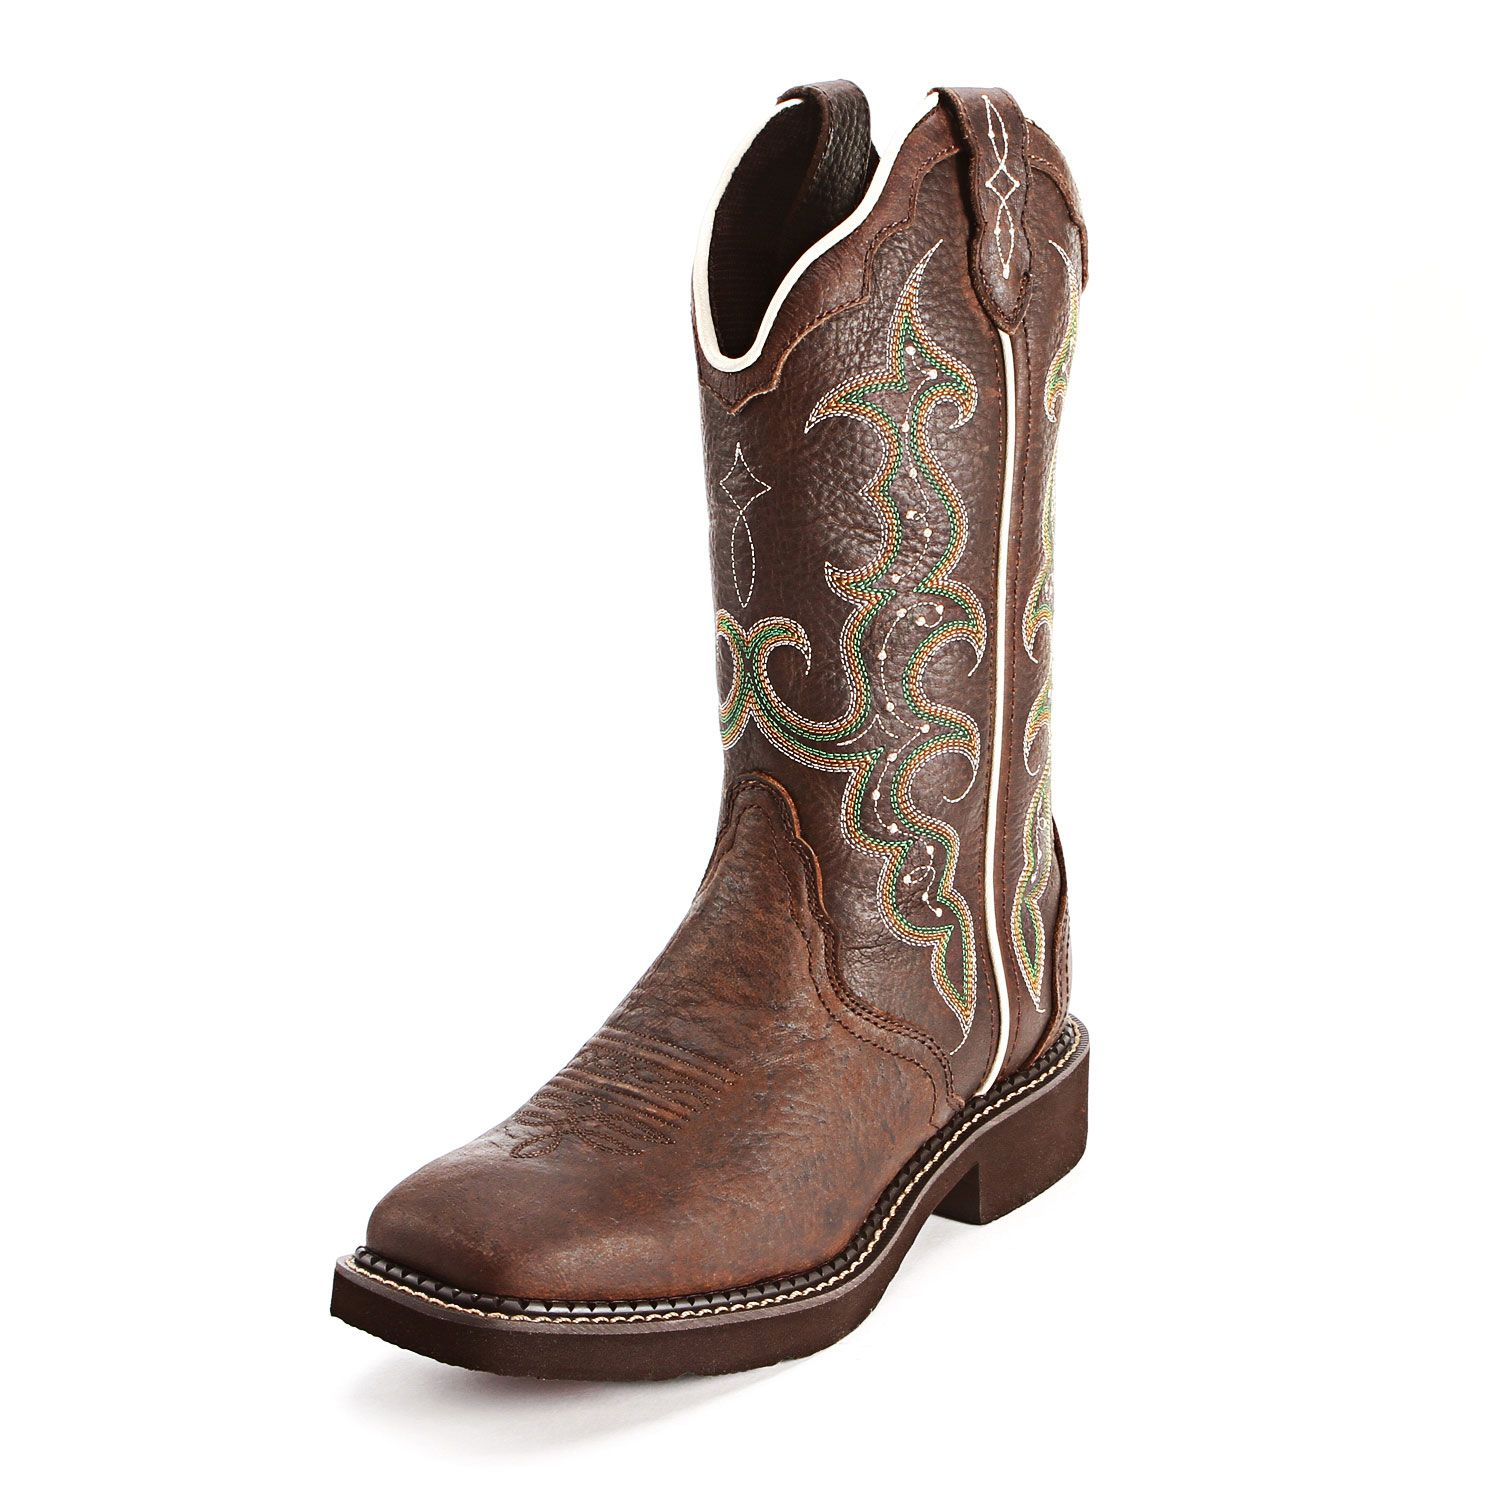 ae308ab3e Justin Gypsy Chocolate Square Toe Cowgirl Boots Botas Vaqueras Mujer